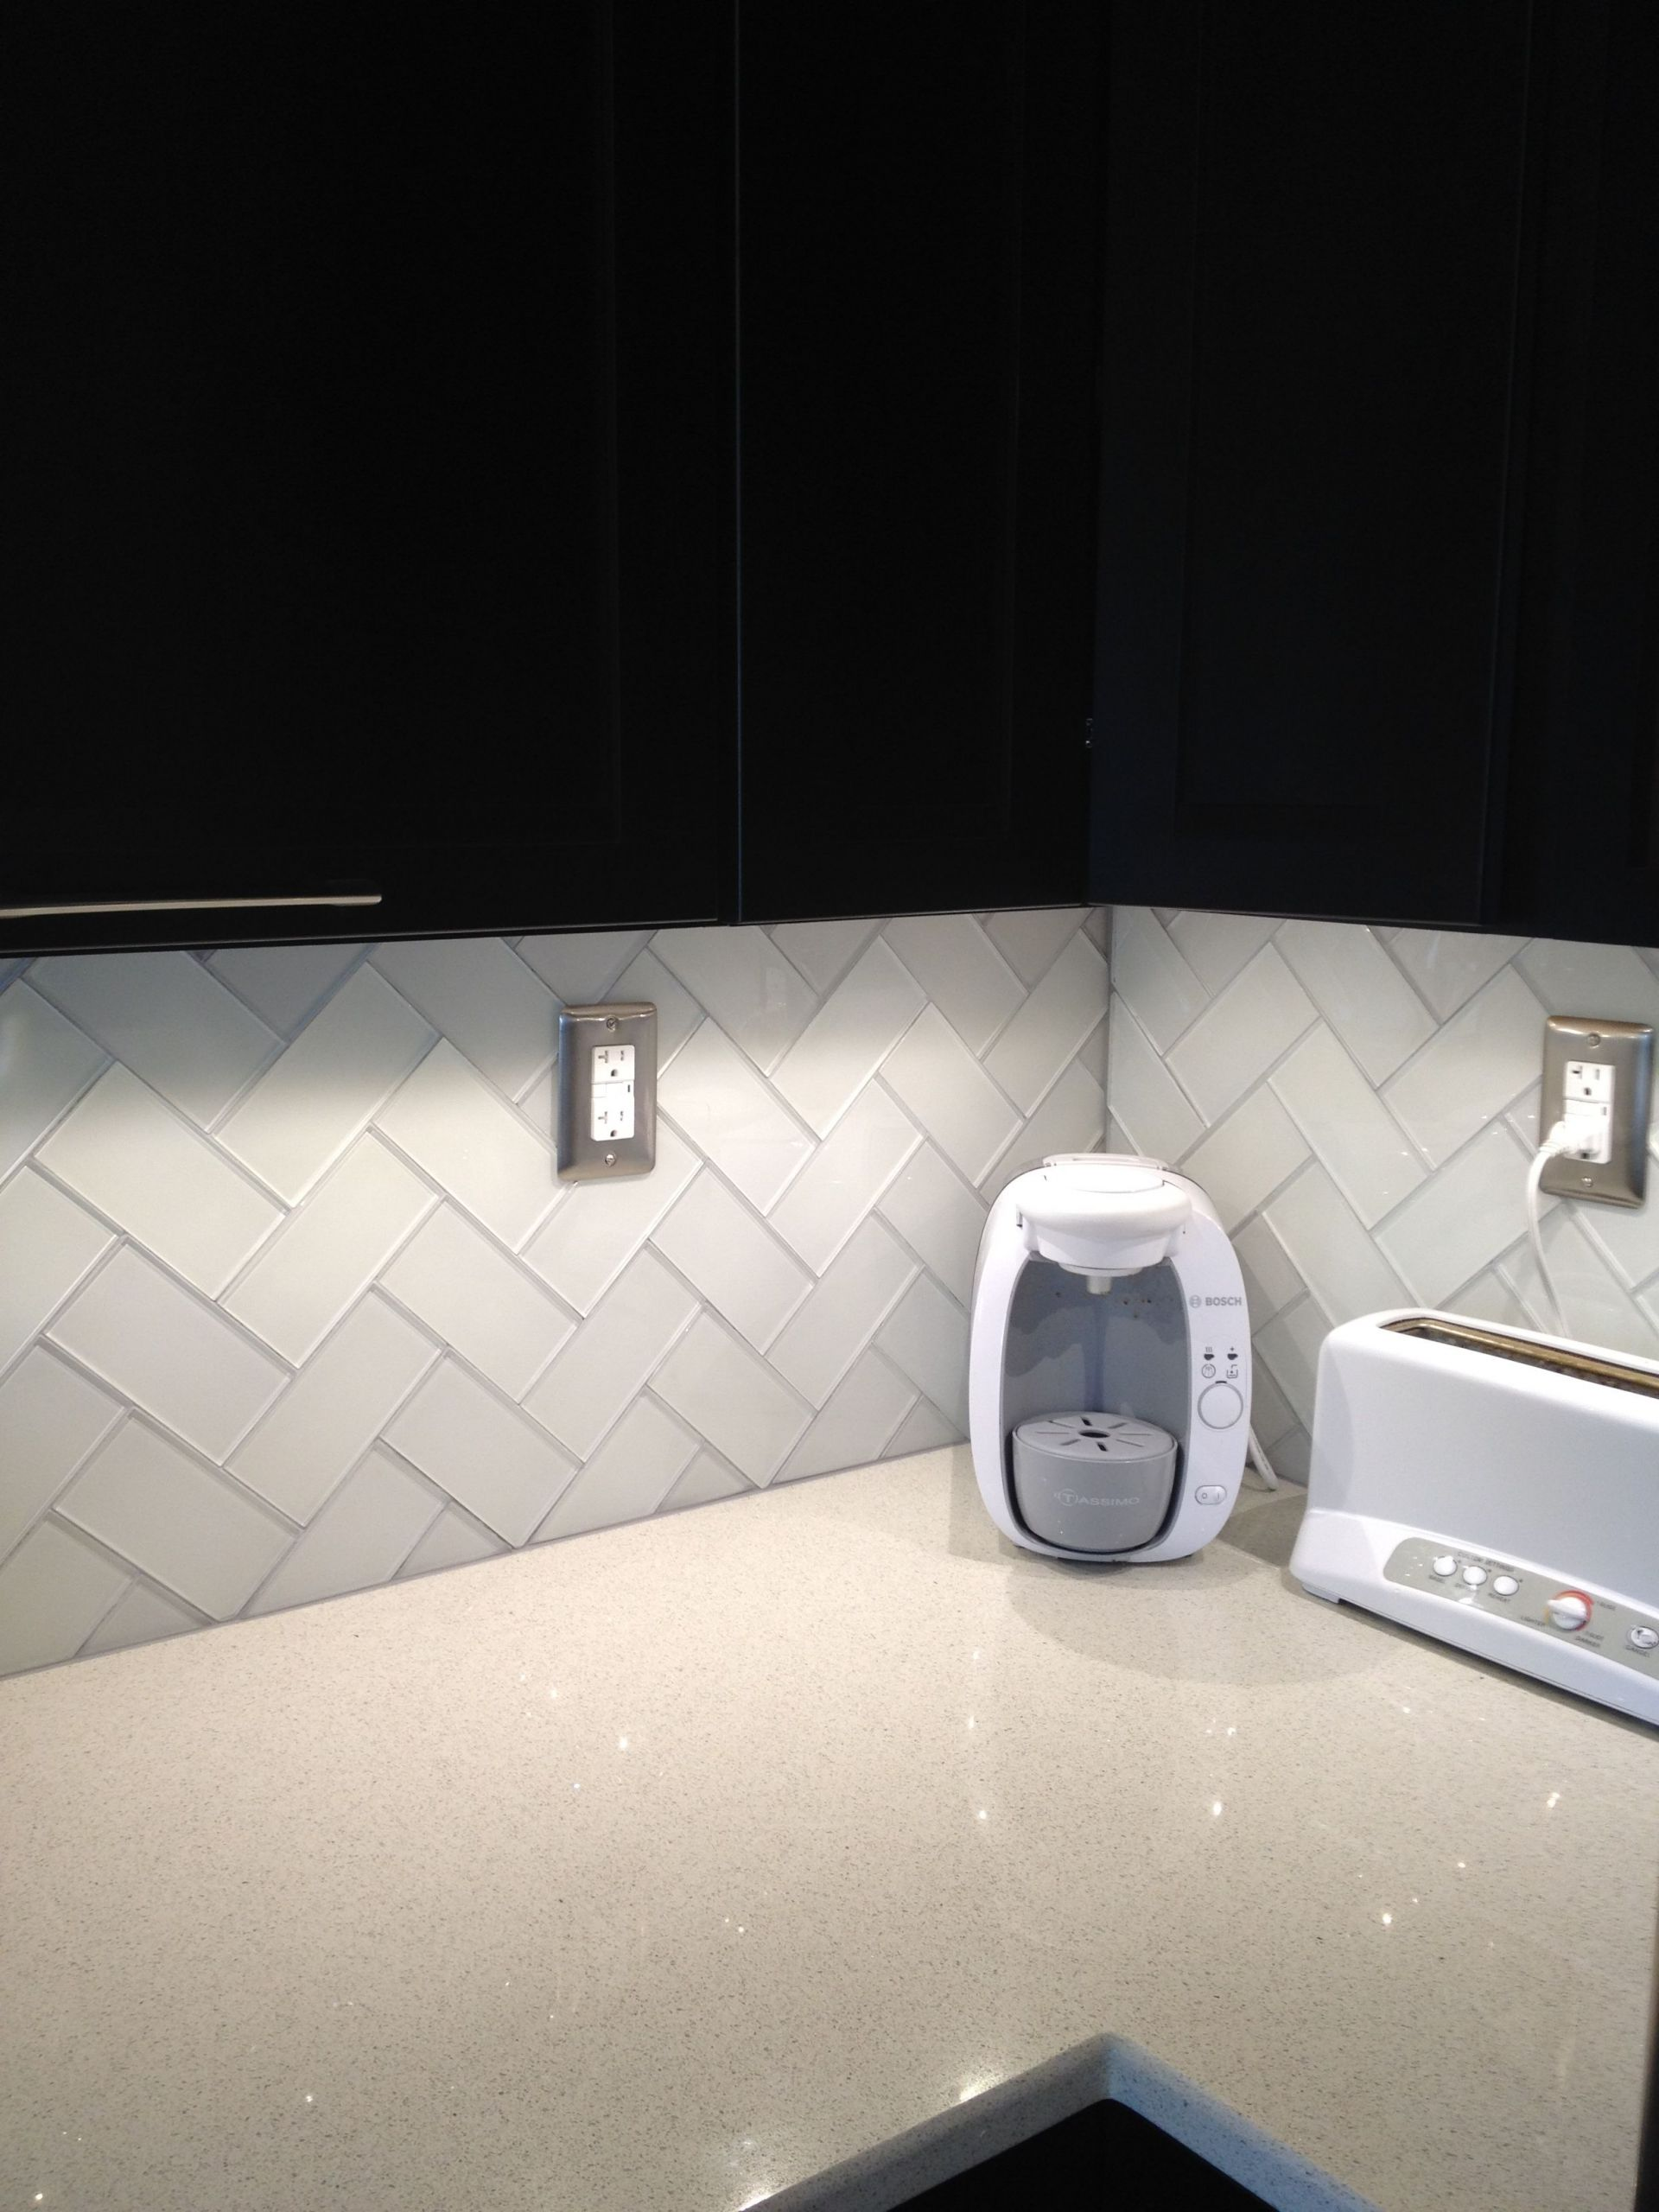 Subway Tile Backsplash Herringbone Inspirational Herringbone Pattern White Glass Subway Tile Added Delorean